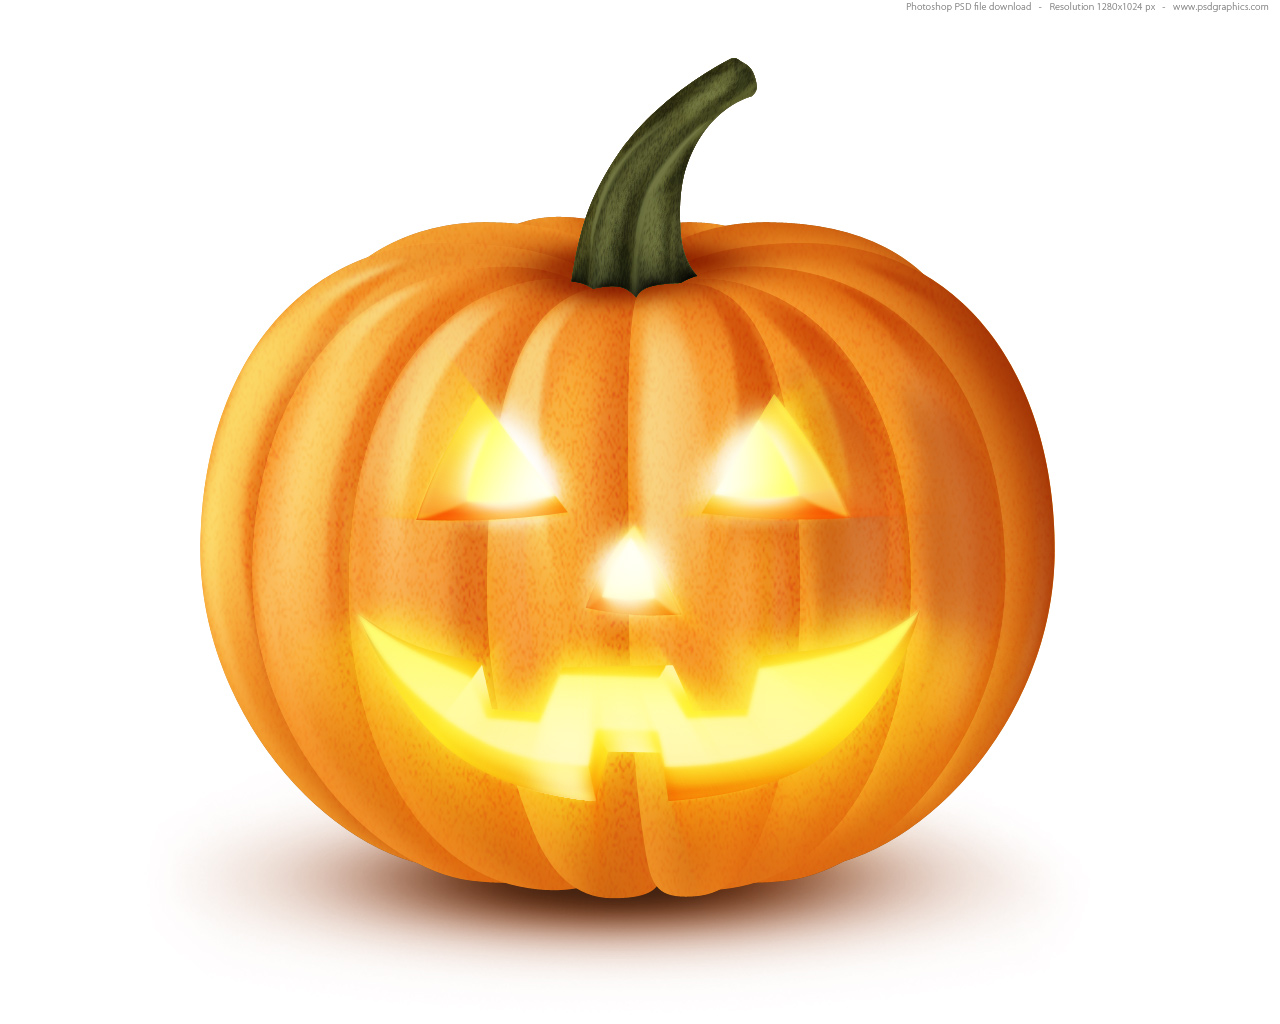 Full size JPG preview Pumpkin icon